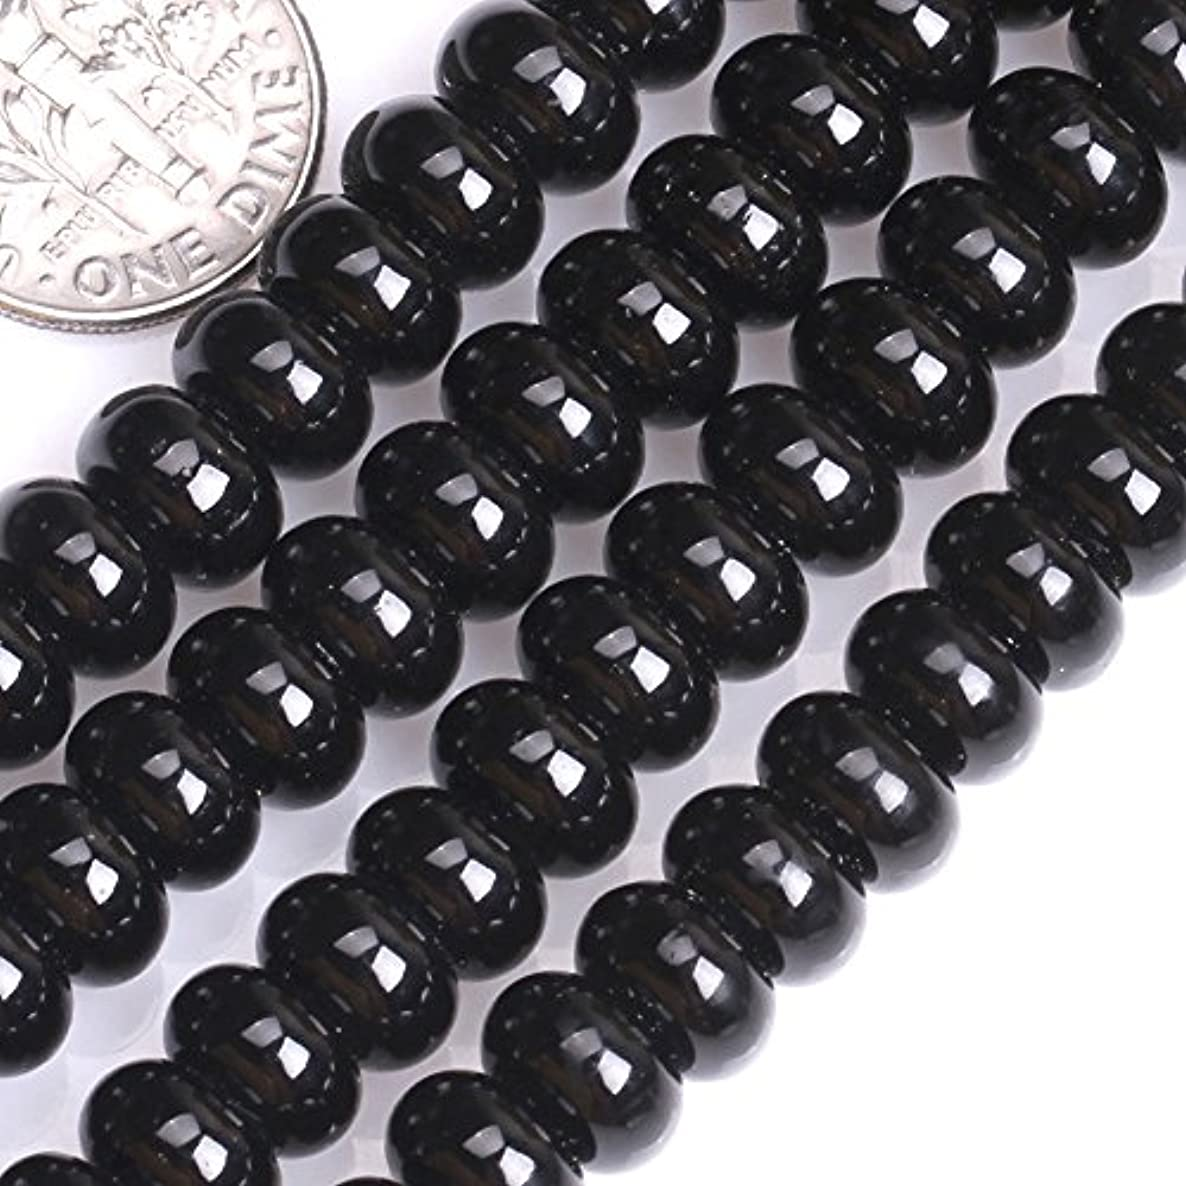 GEM-inside Black Agate Gemstone Loose Beads 5X8mm Roundelle Shape Energy Stone Power For Jewelry Making 15 Inches